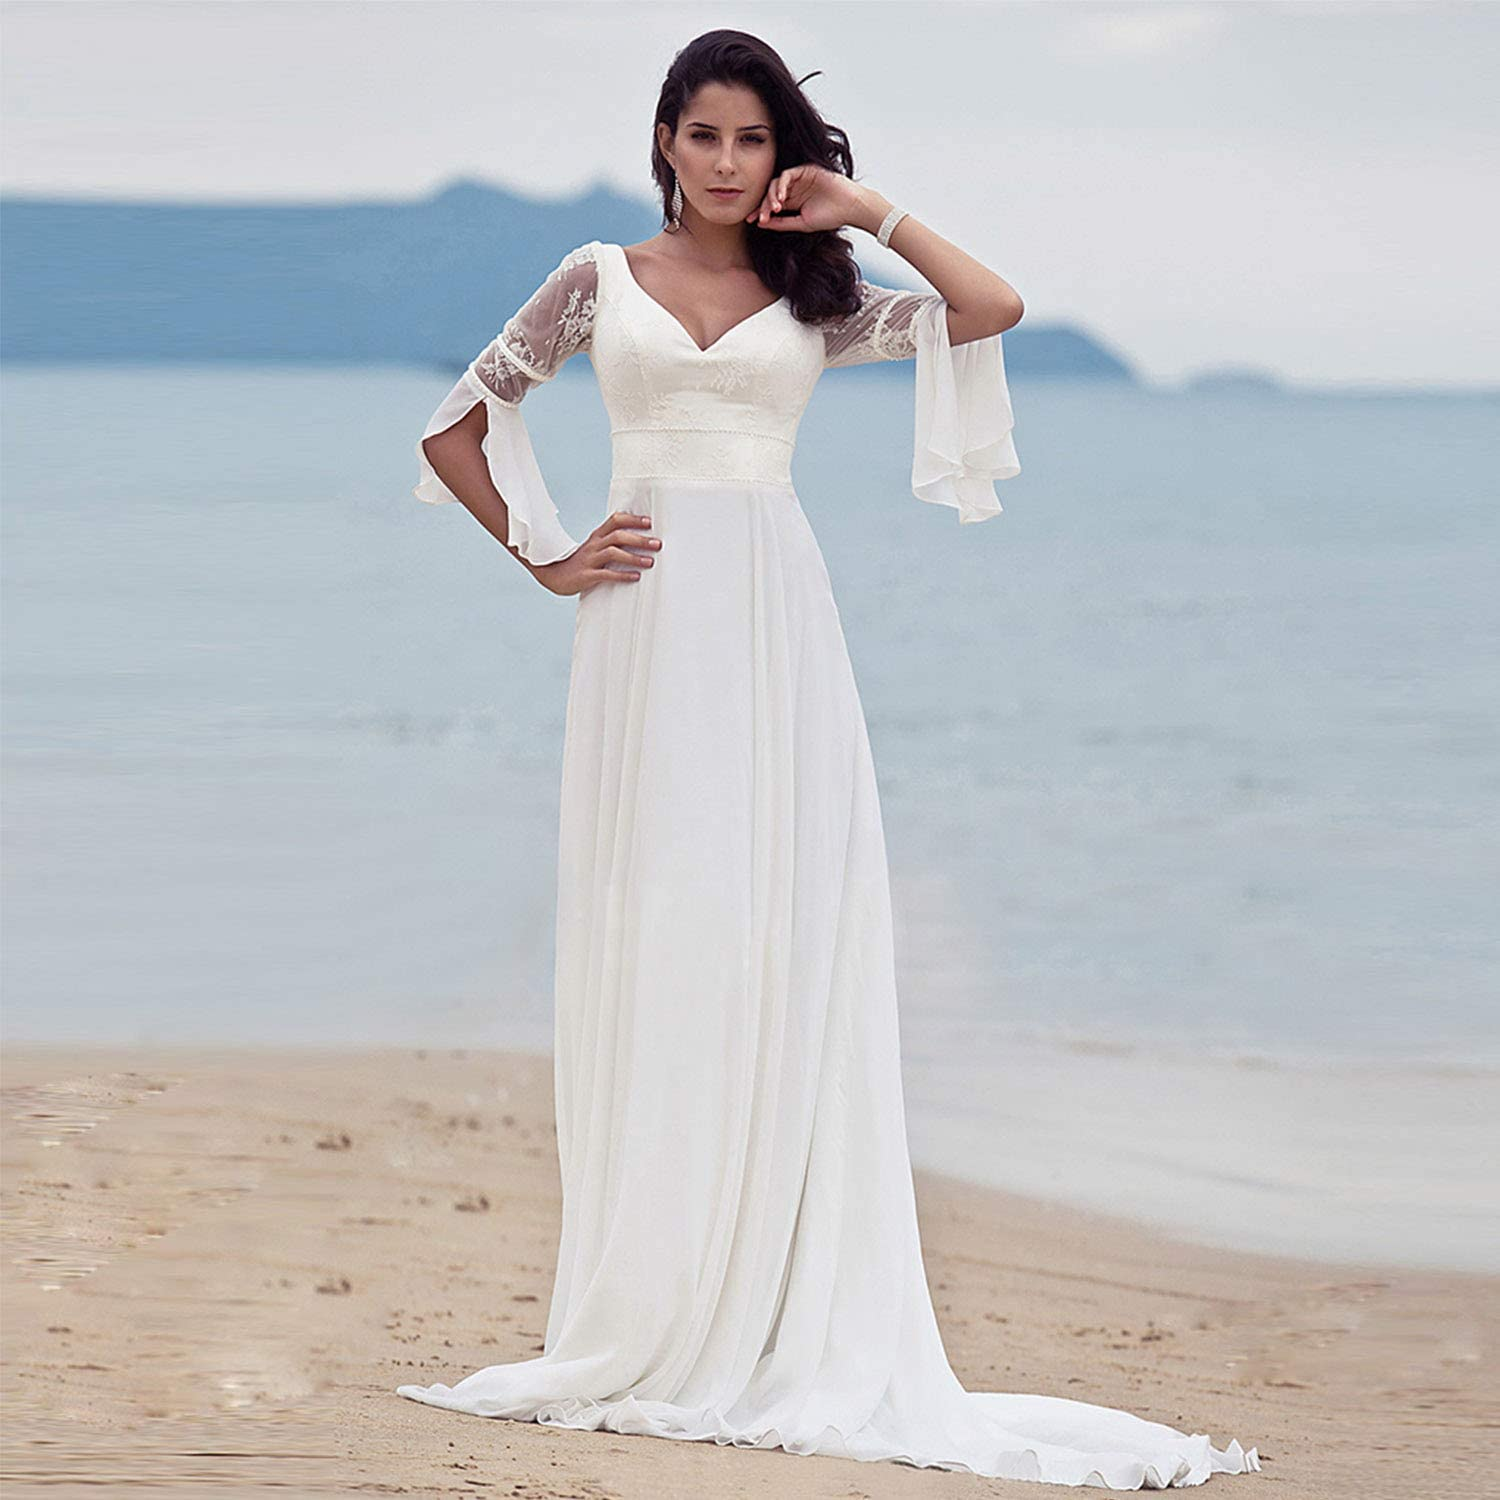 Amazon Com Women S Beach Wedding Dresses Elegant Simple Sexy V Neck Court Chiffon Dresses For Bride Wedding Ceremony Evening Prom Cocktail Party Use Clothing